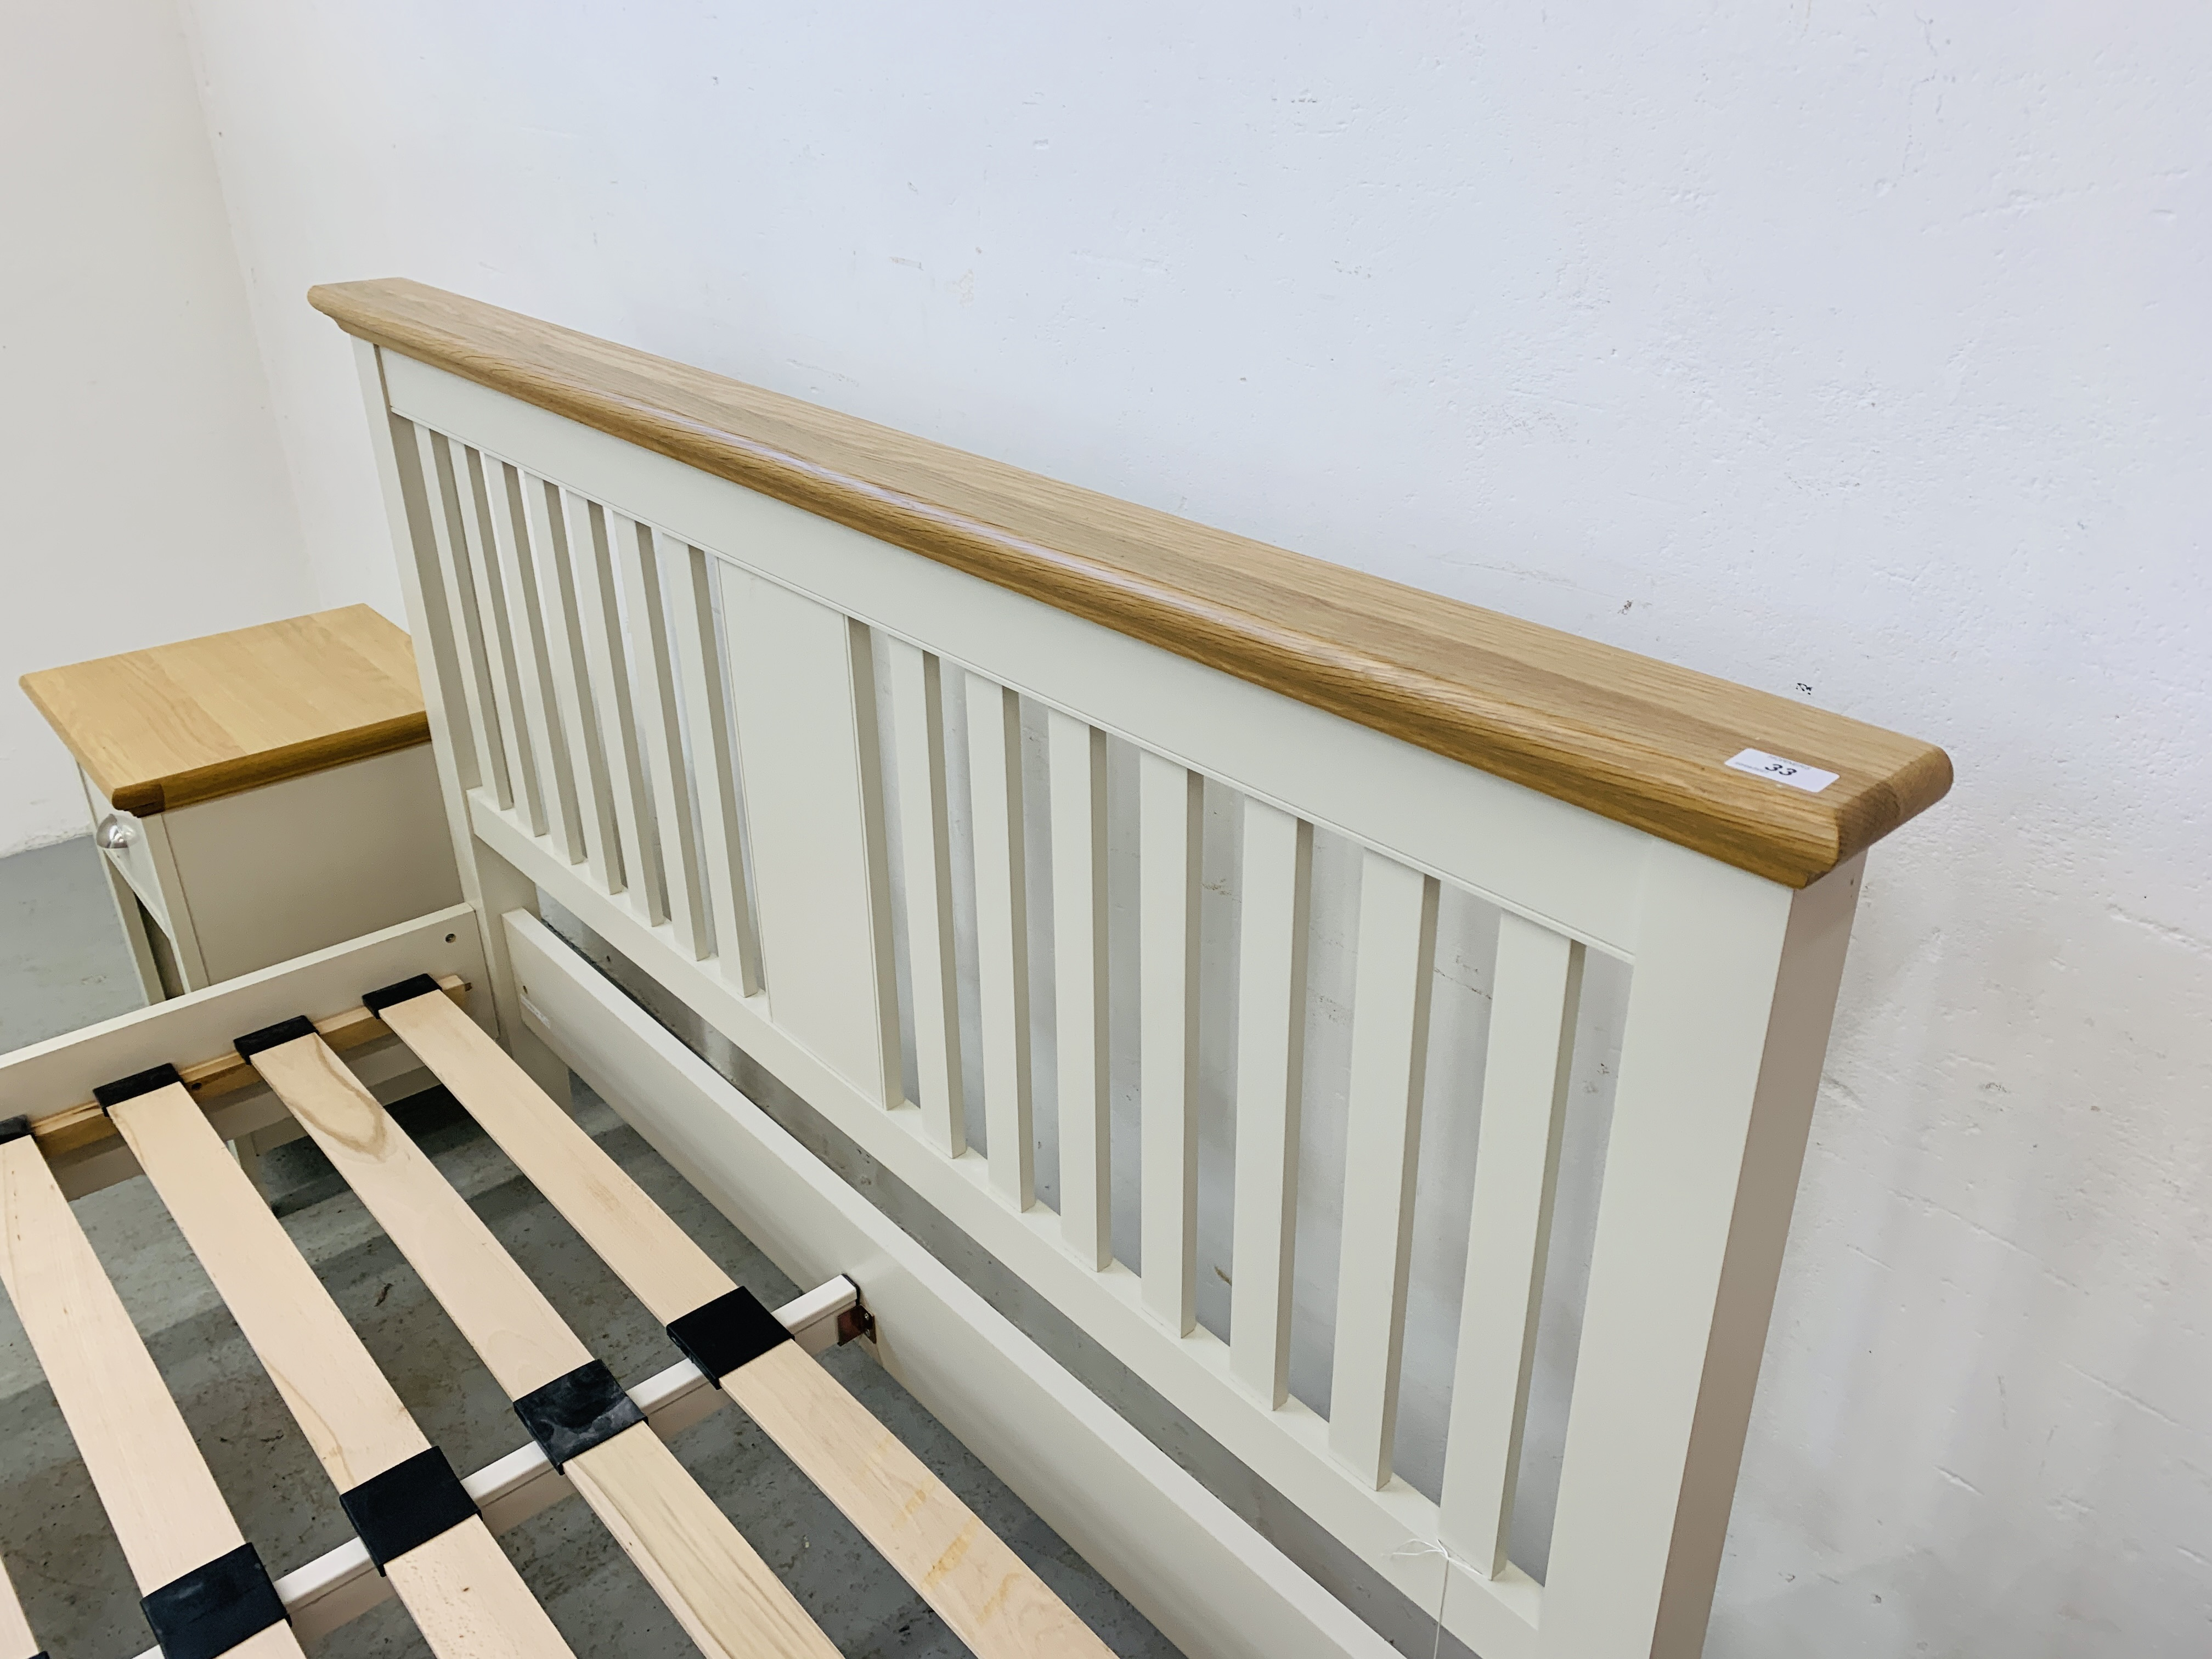 A PREMIER COLLECTION DESIGNER KING SIZE BEDSTEAD WITH MATCHING PAIR OF SINGLE DRAWER BEDSIDE STANDS - Image 13 of 15